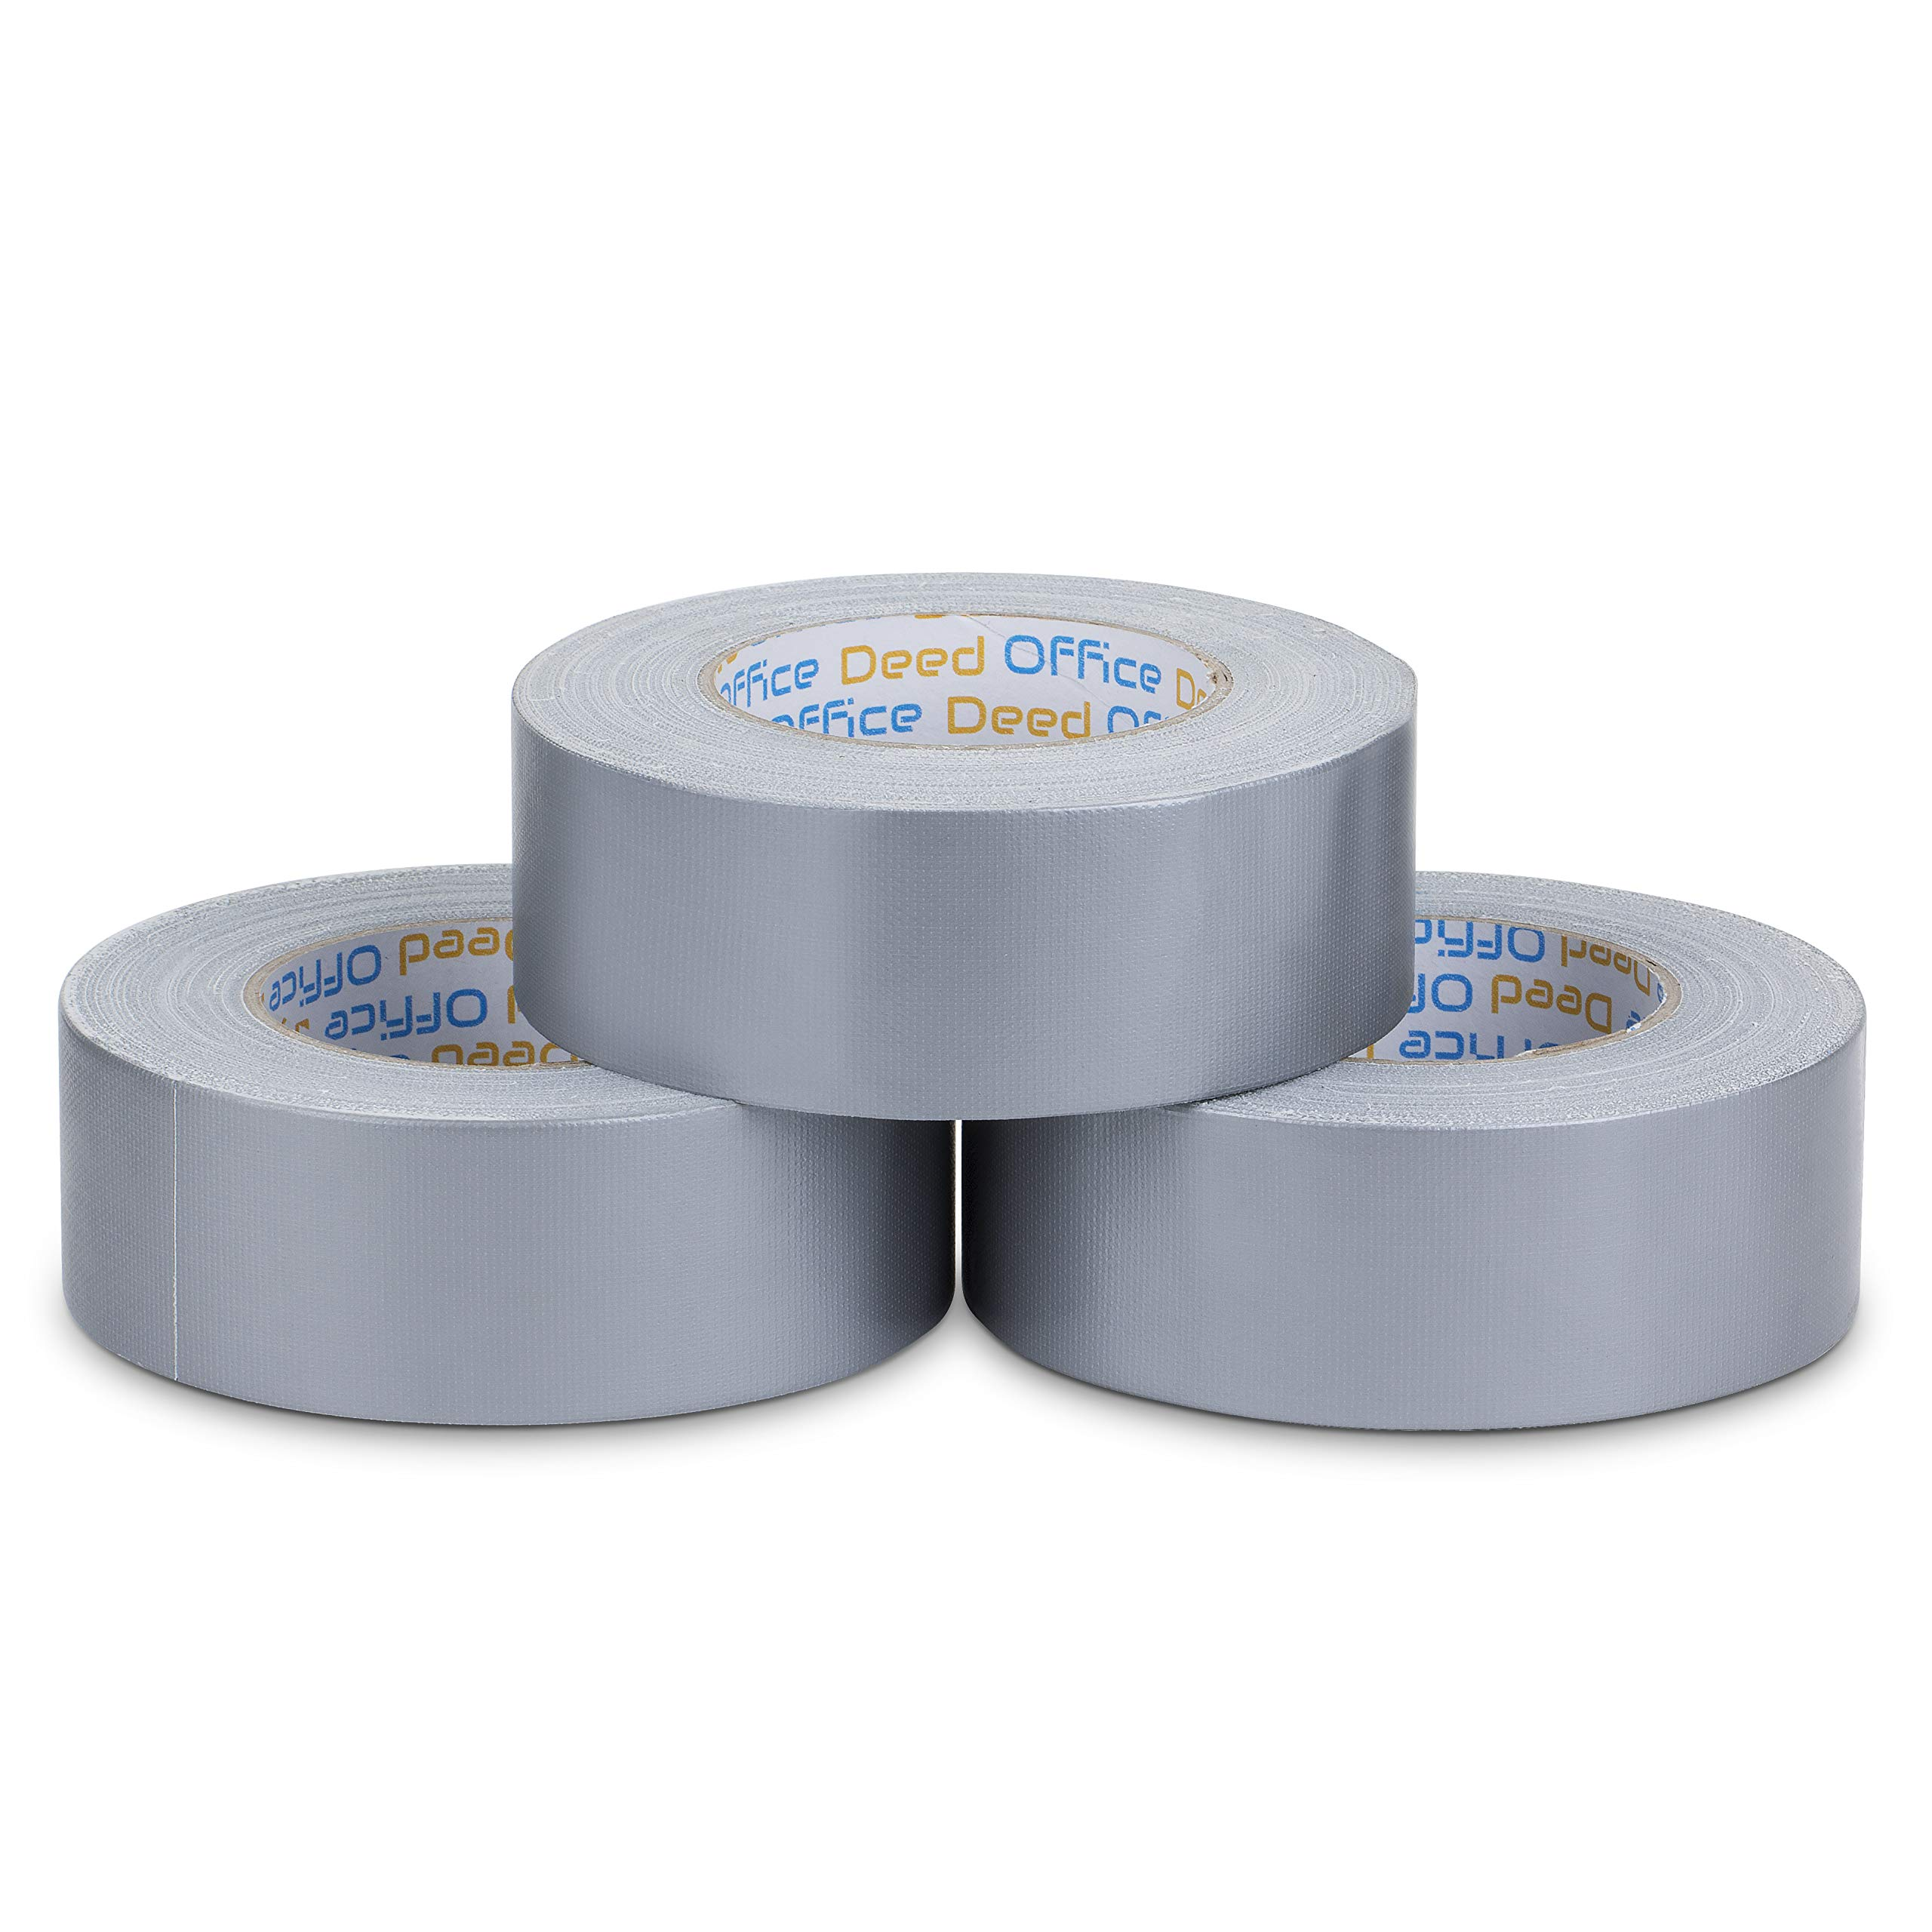 Office Deed 3 Pack Duct Tape Commercial Grade 7.3mil Thick (1.88 Inch x 60 Yards), 48mm x 55m - Ideal for Crafts, Home Improvement Projects, Repairs, Maintenance, Bulk